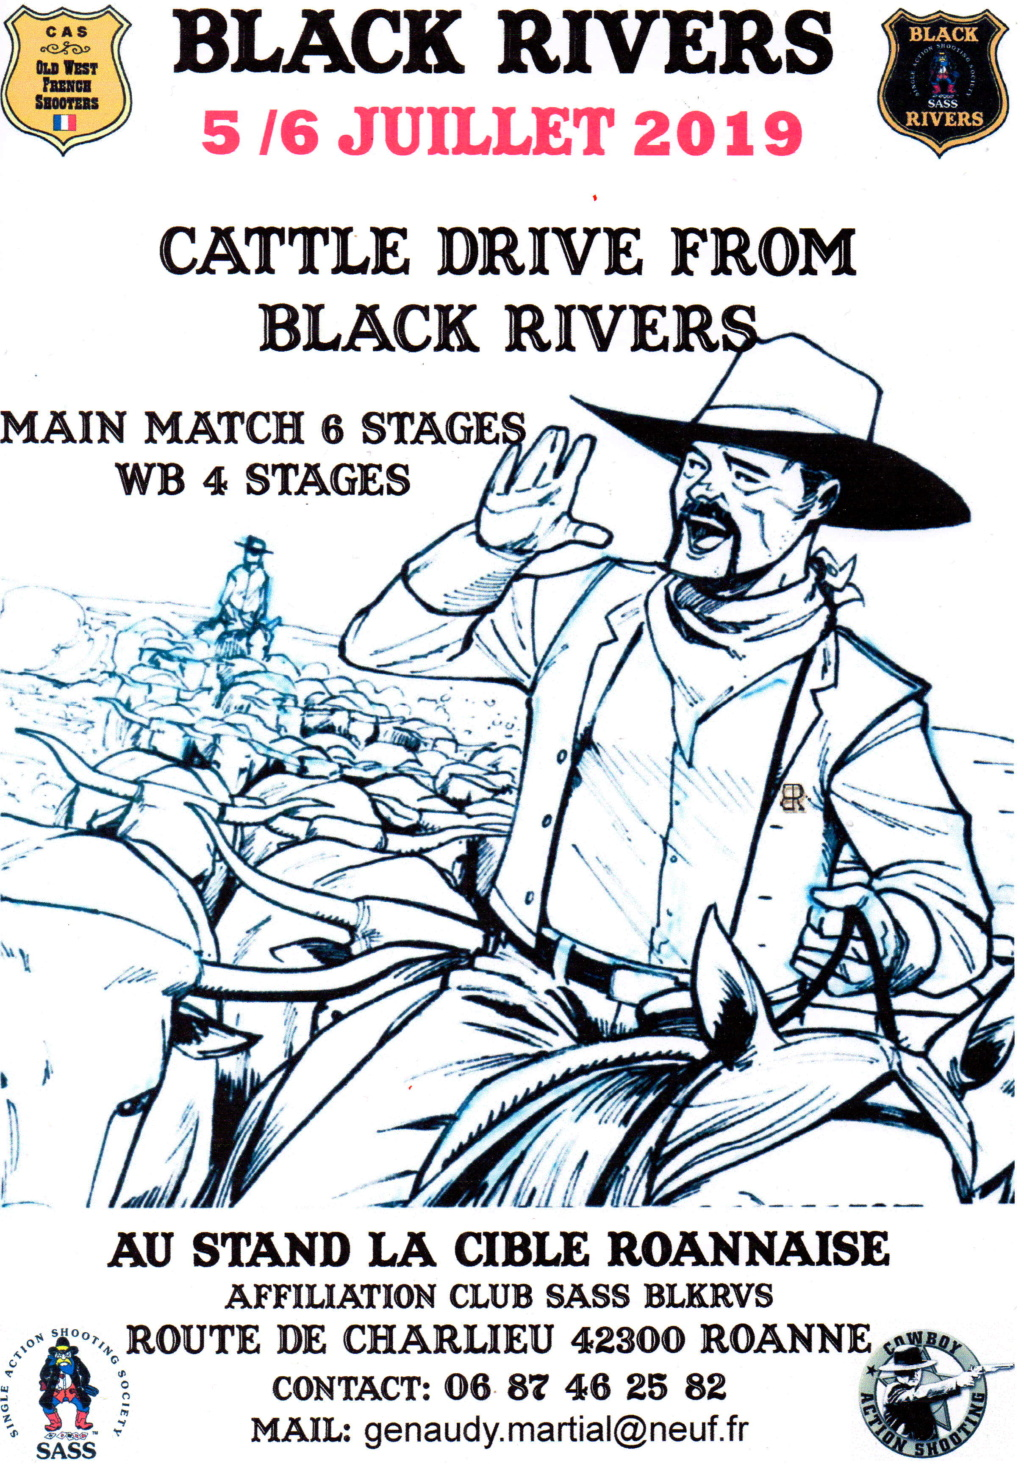 CATTLE DRIVE FROM BLACK RIVERS  05/06 juillet 2019 Affich14